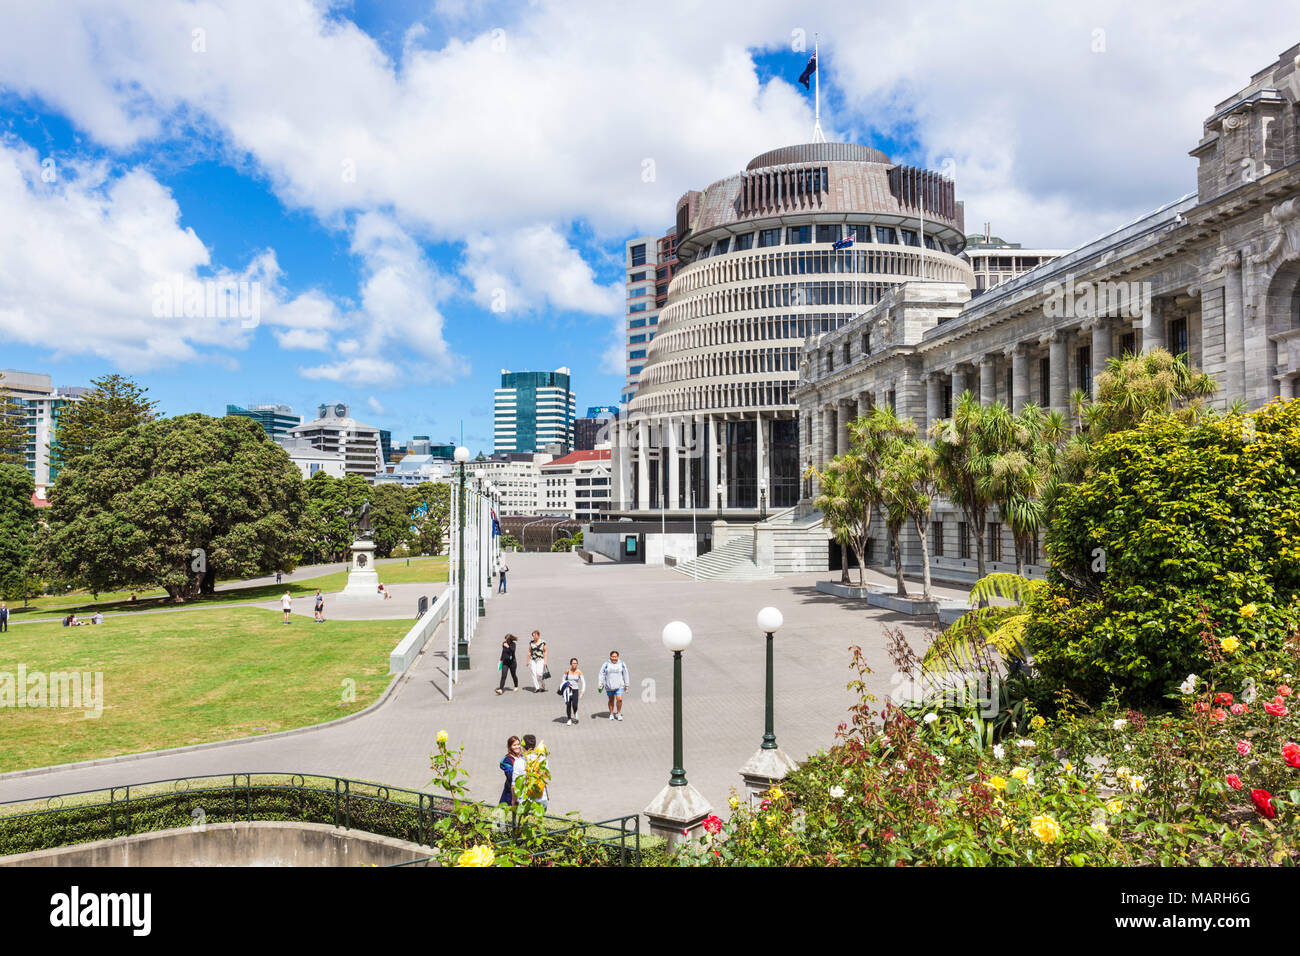 new zealand parliament wellington new zealand The Beehive by Sir Basil Spence  new zealand government buildings Wellington North Island new zealand nz - Stock Image